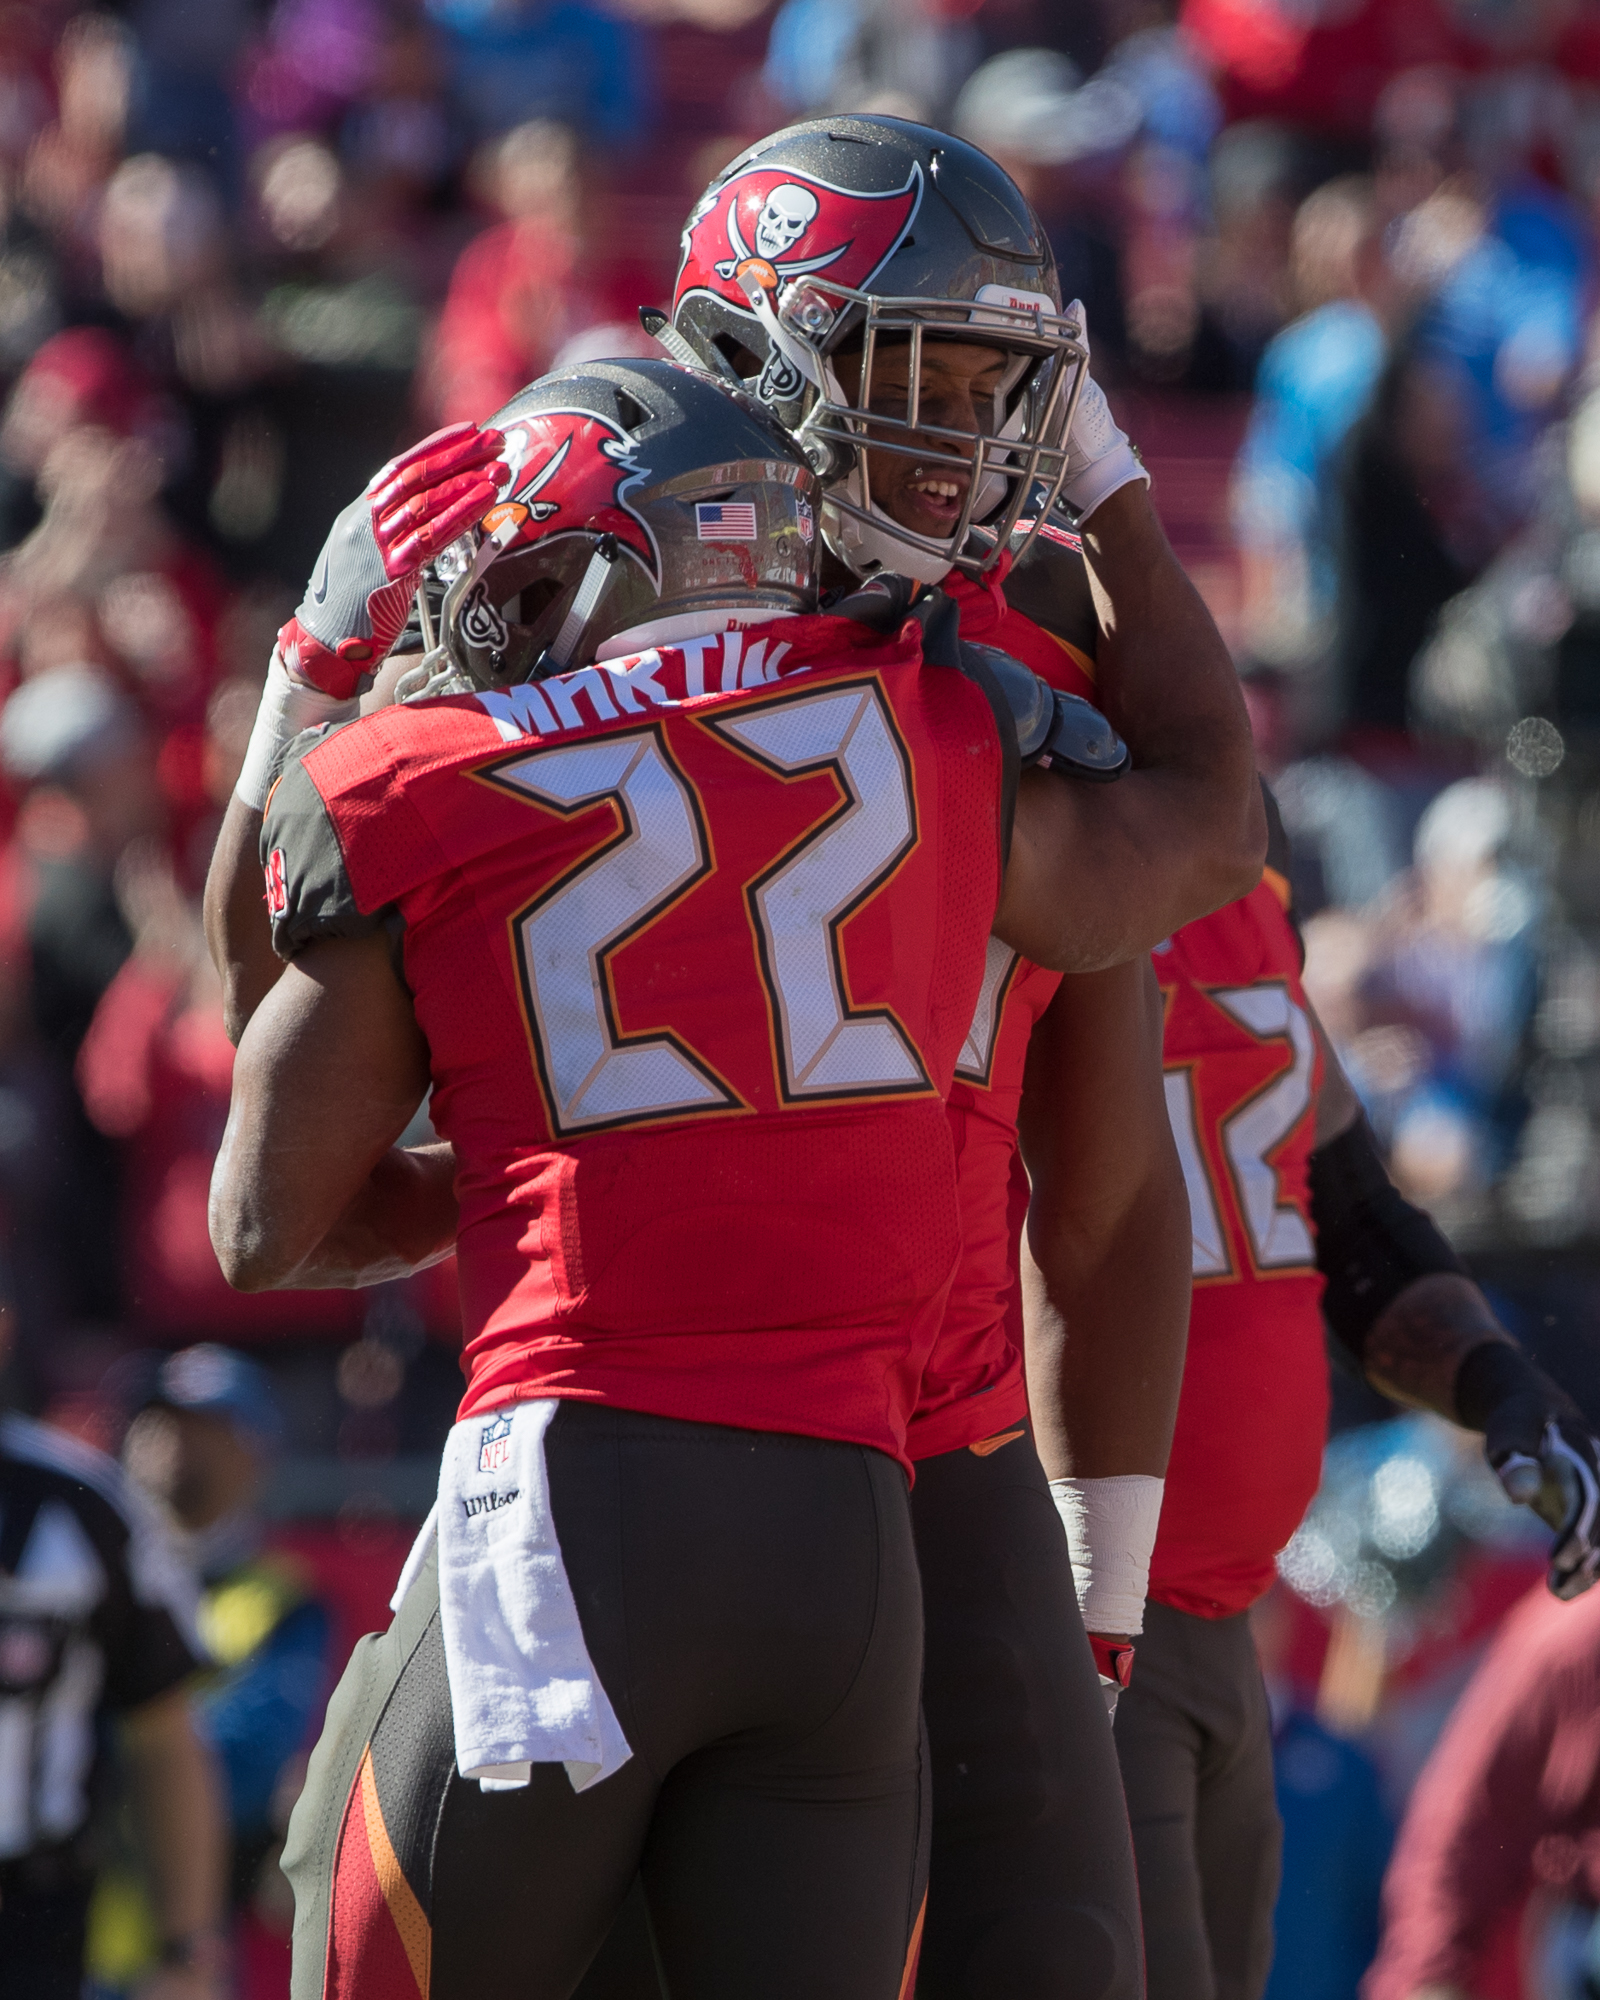 Doug Martin celebrates after scoring a touchdown./STEVEN MUNCIE